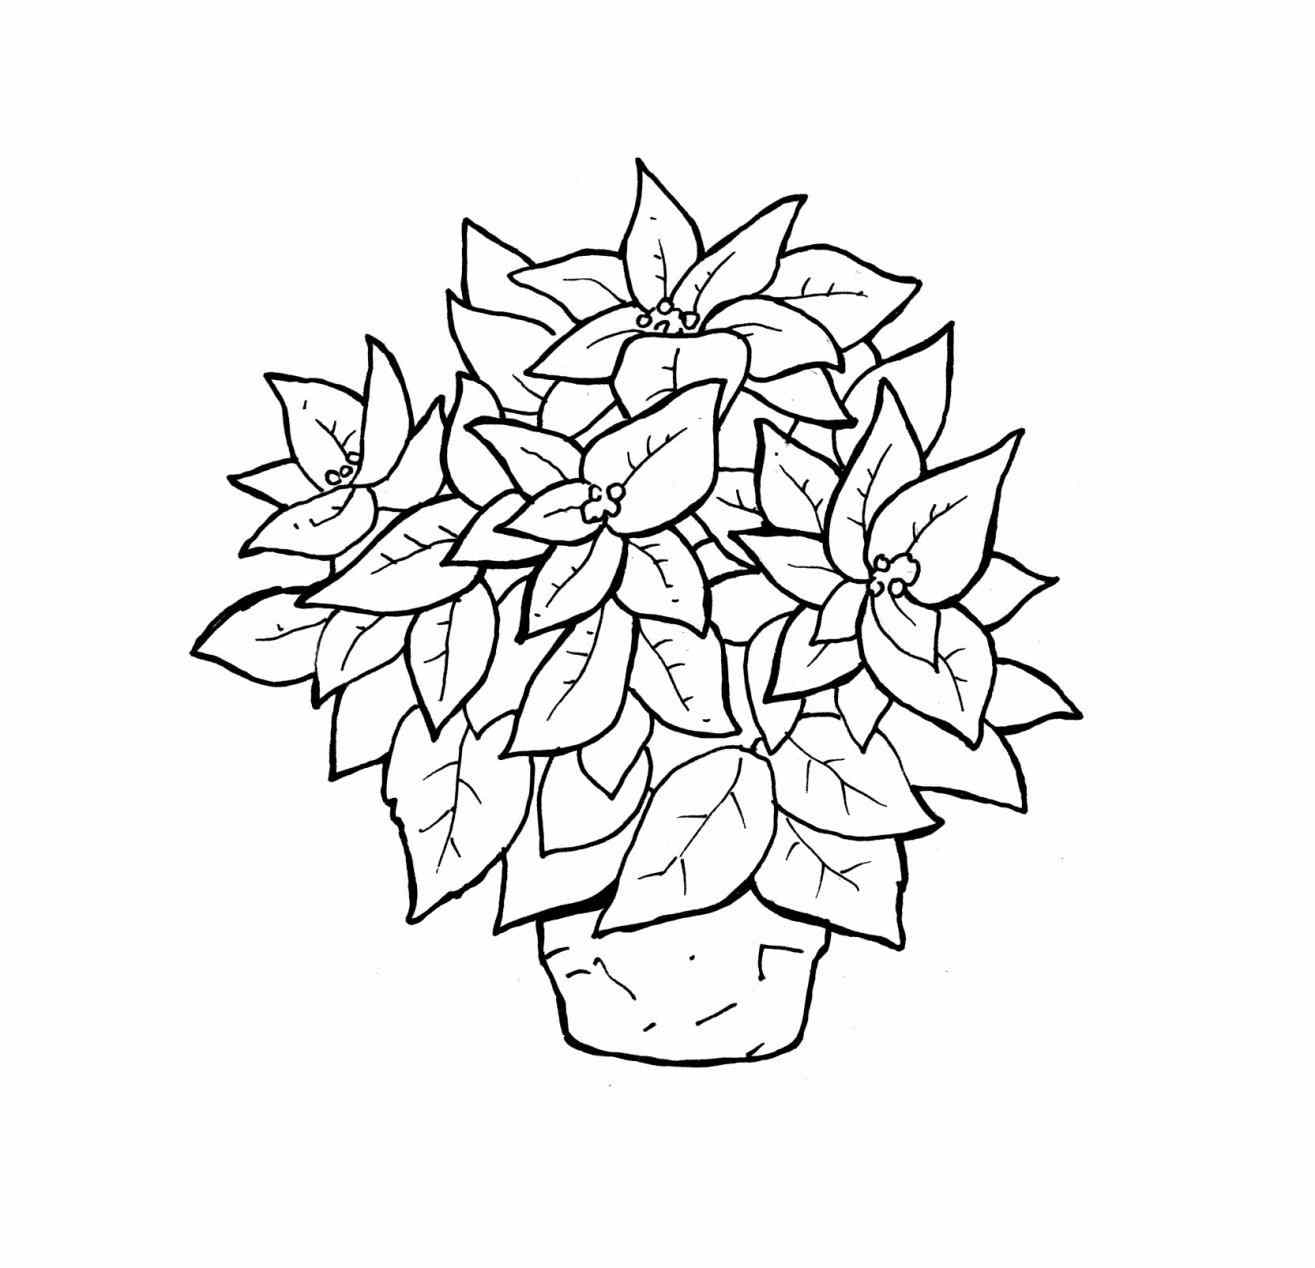 poinsettia coloring pages a bit of poinsettia fruit for national poinsettia day pages coloring poinsettia